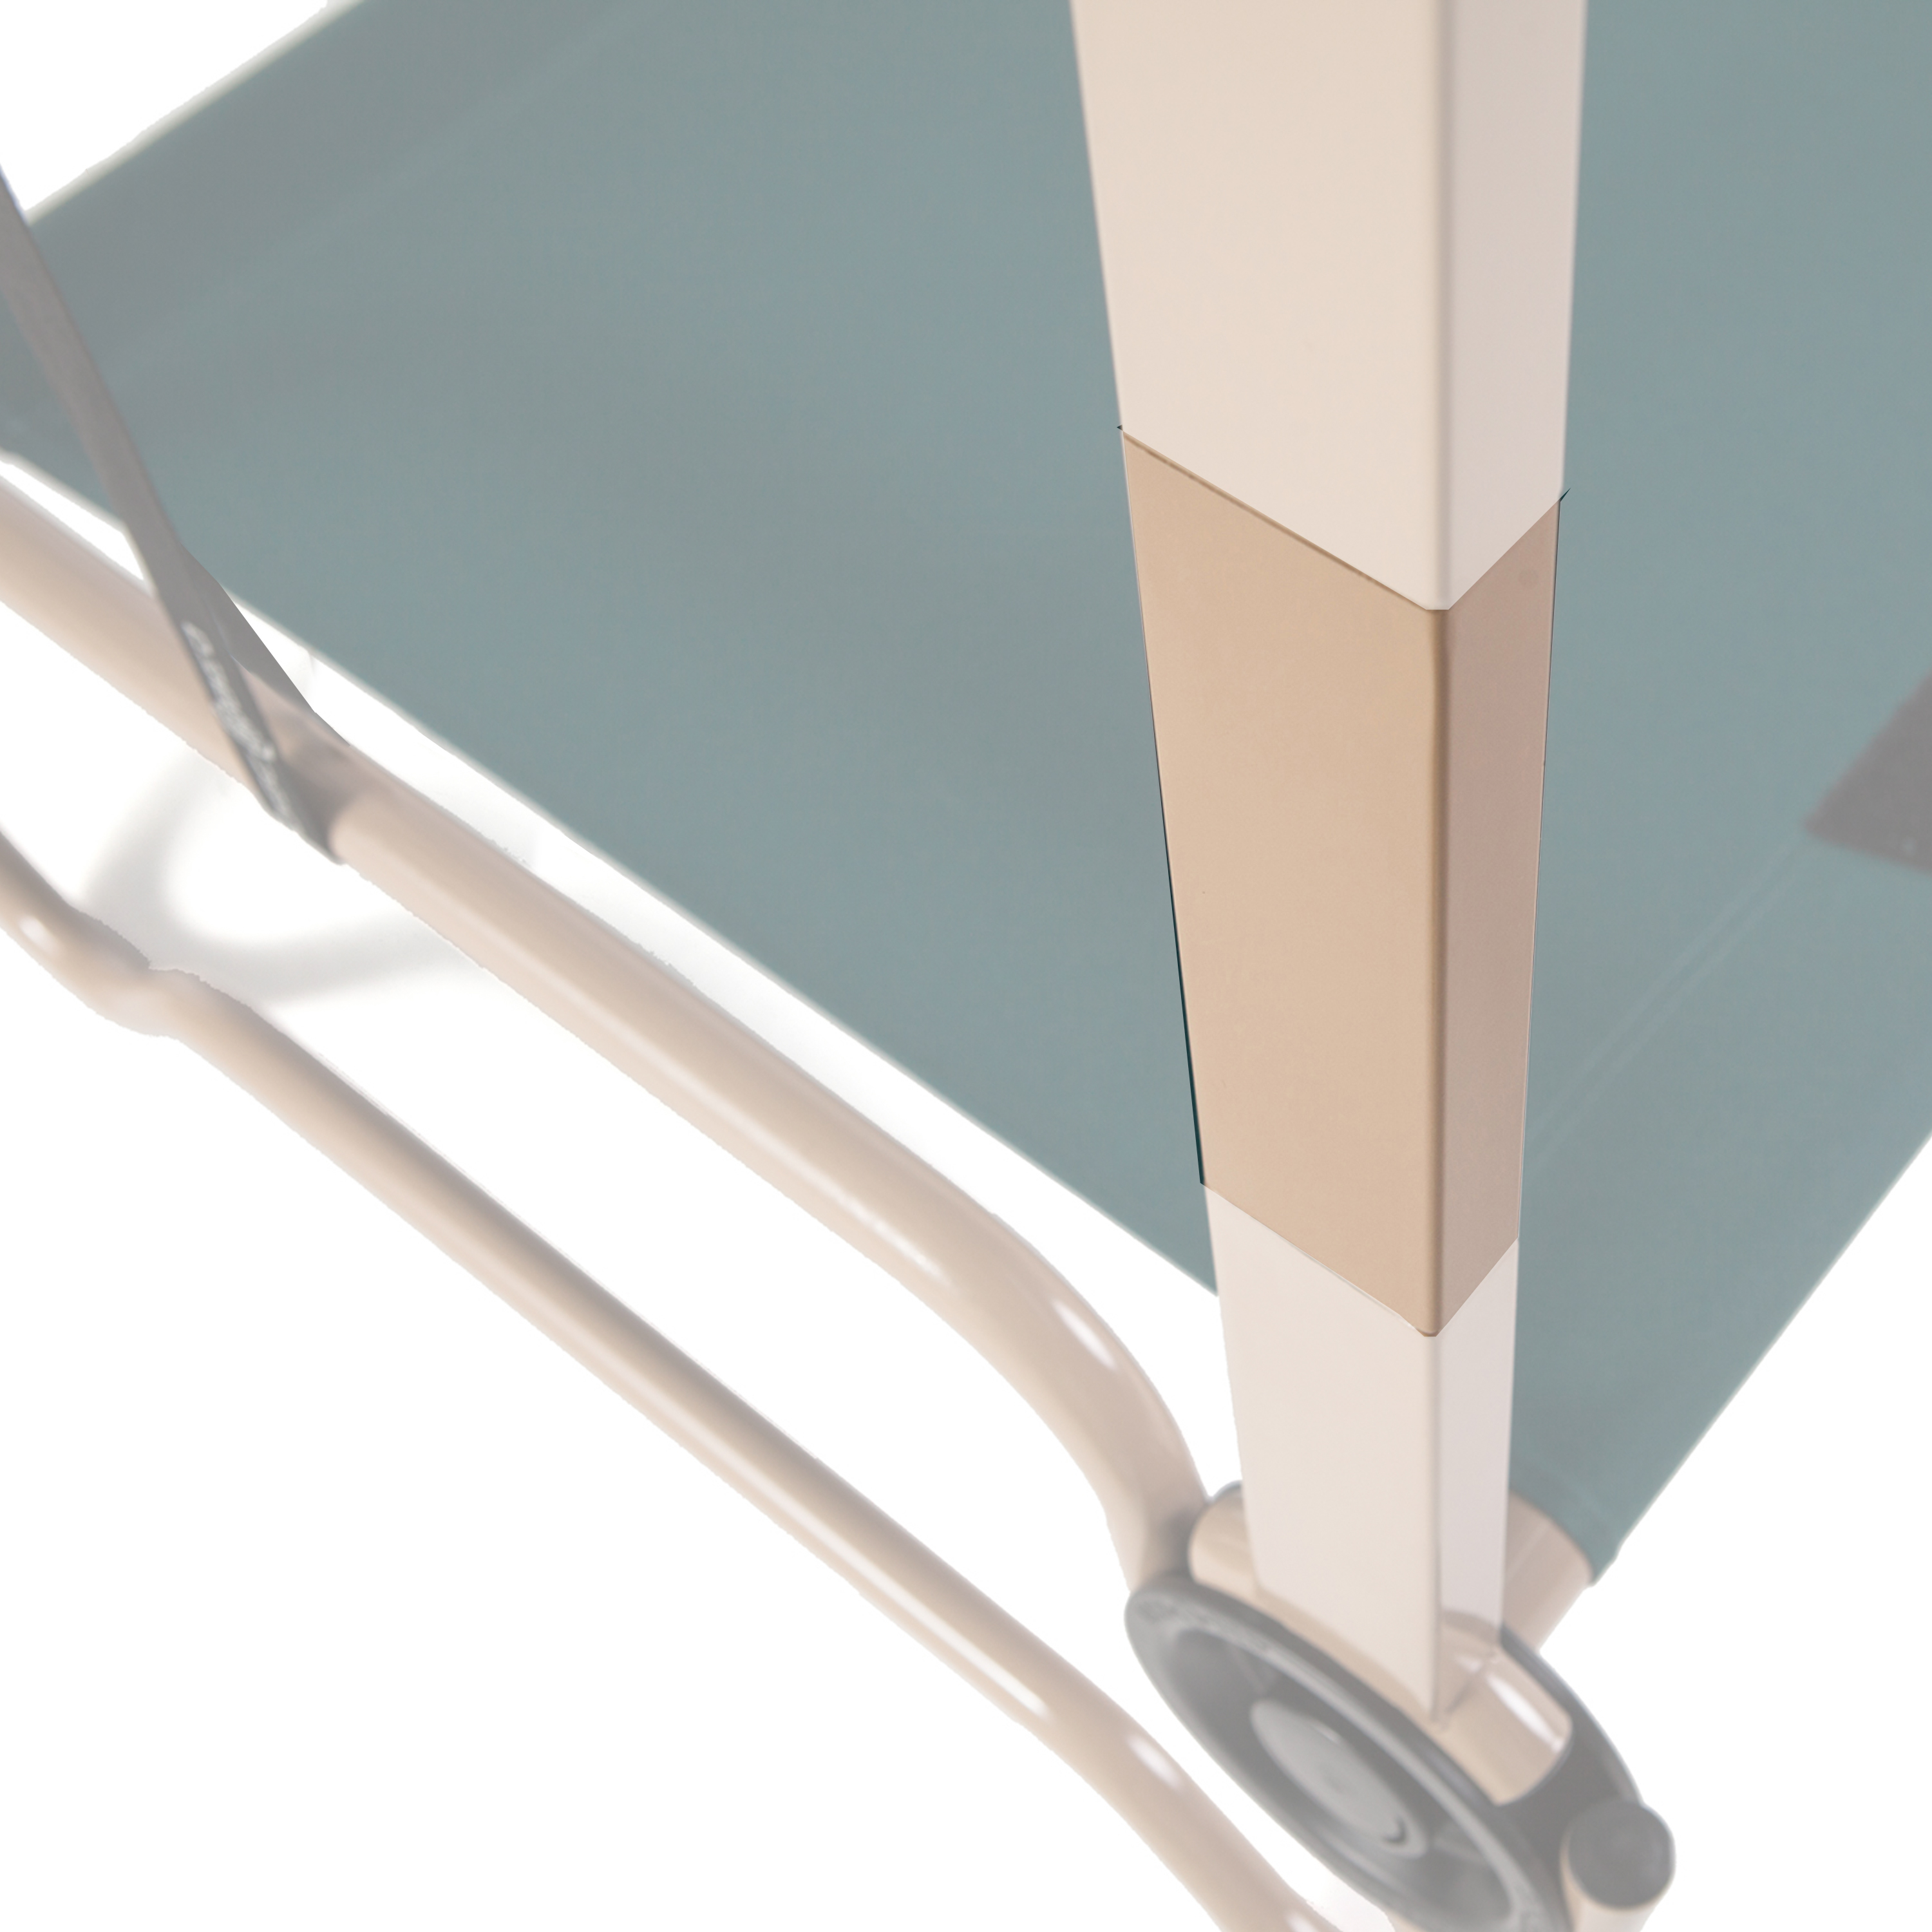 Disc O Bed Leg Extensions In Tan Disc O Bed